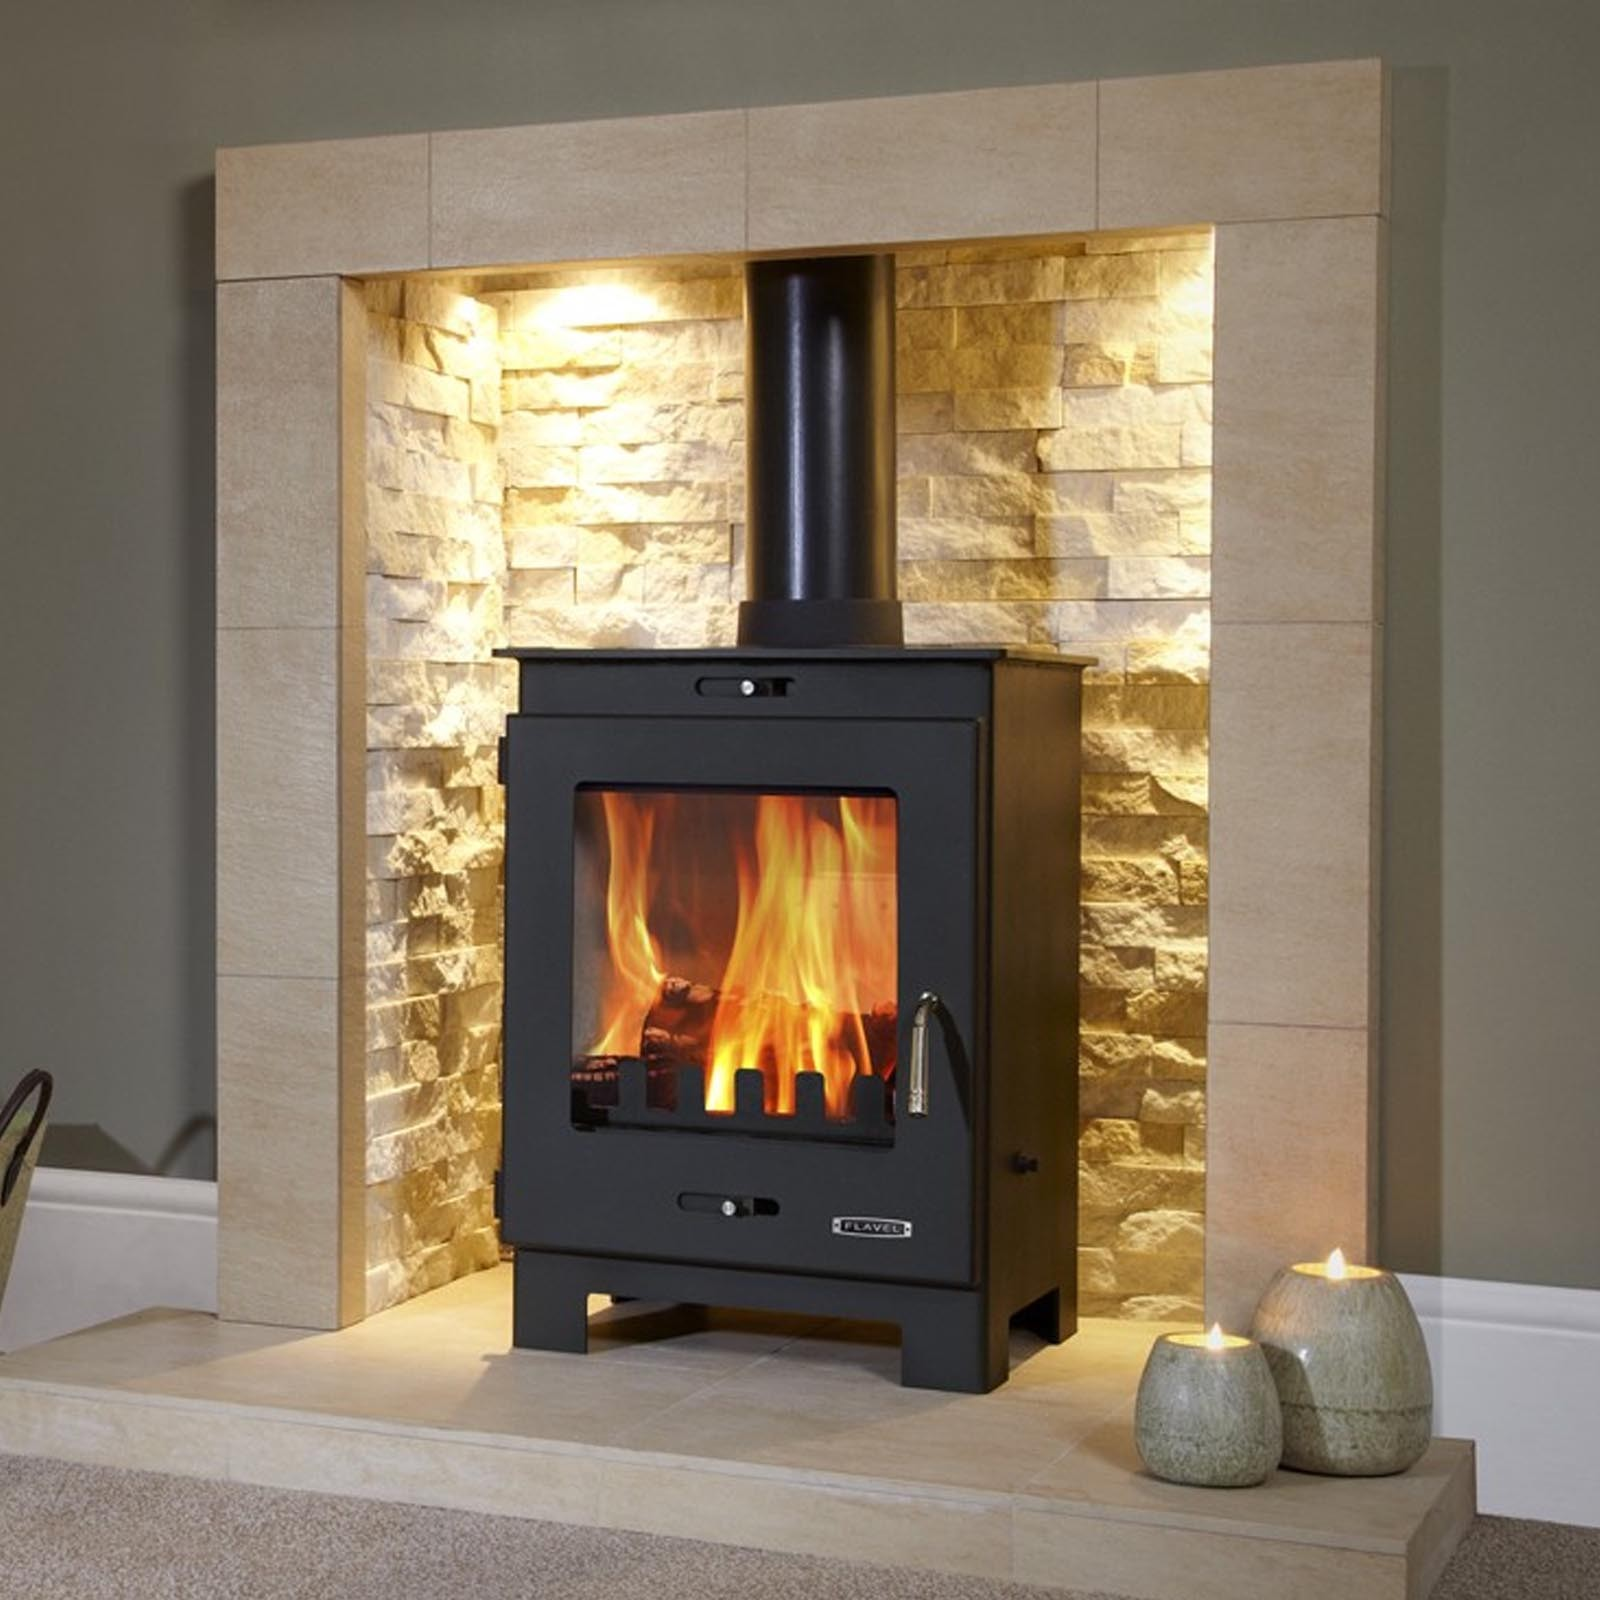 next day delivery flavel arundel multifuel stove great. Black Bedroom Furniture Sets. Home Design Ideas